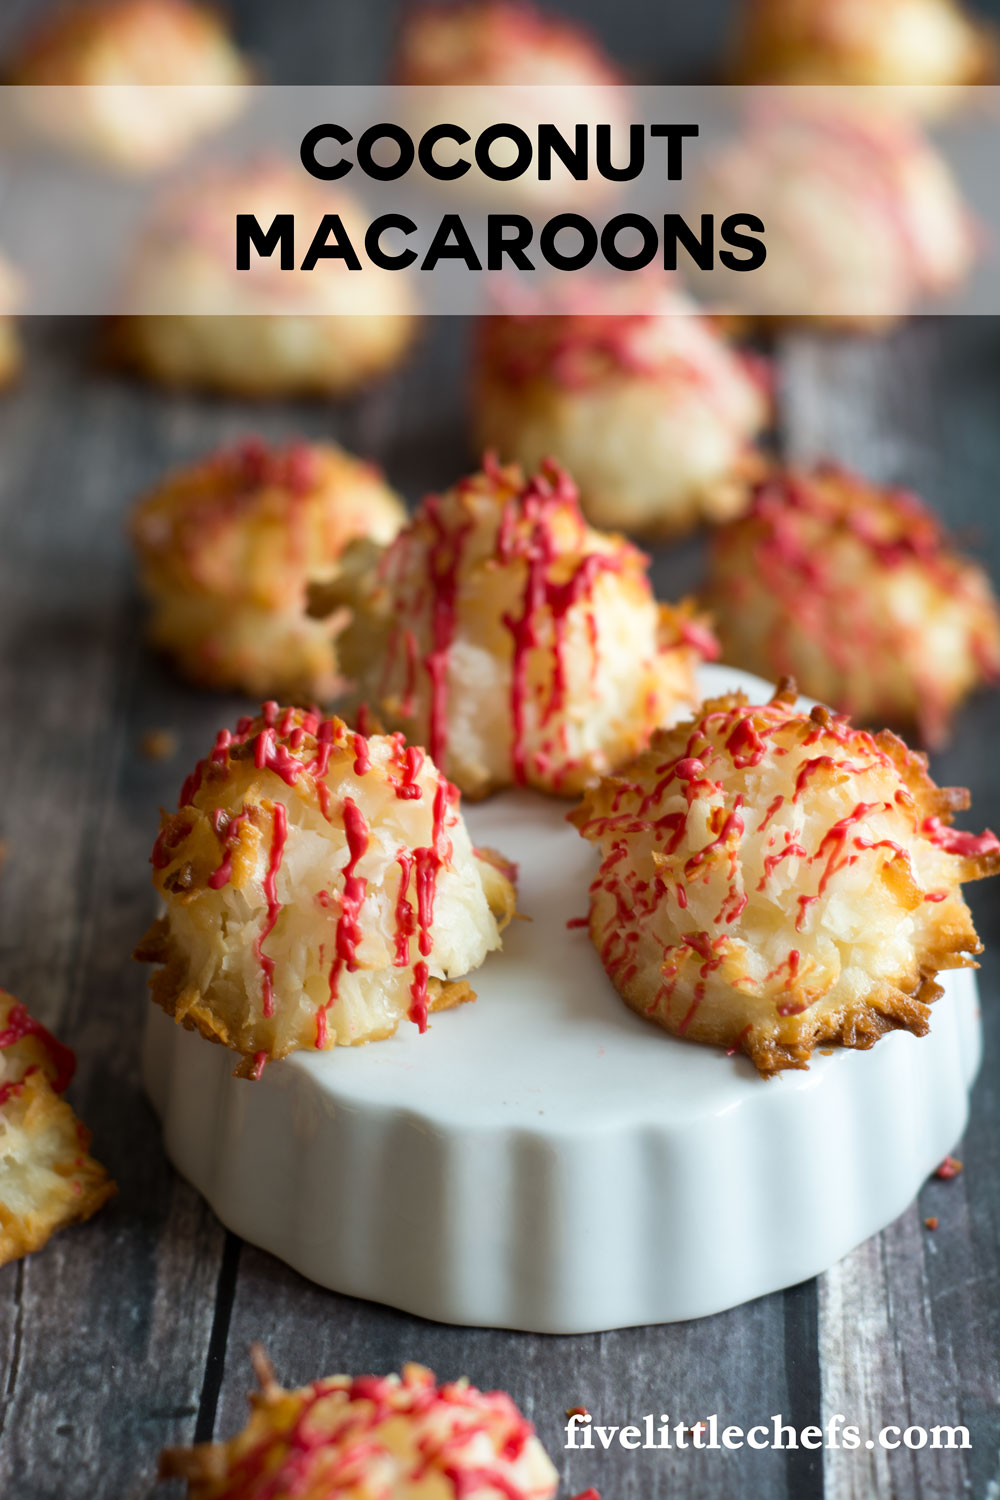 The best and easiest Coconut Macaroons. The coconut is toasted on the outside making a crunchy crust while the inside is soft and chewy. This recipe has only 5 ingredients, including sweetened condensed milk, which you probably already have in your pantry.